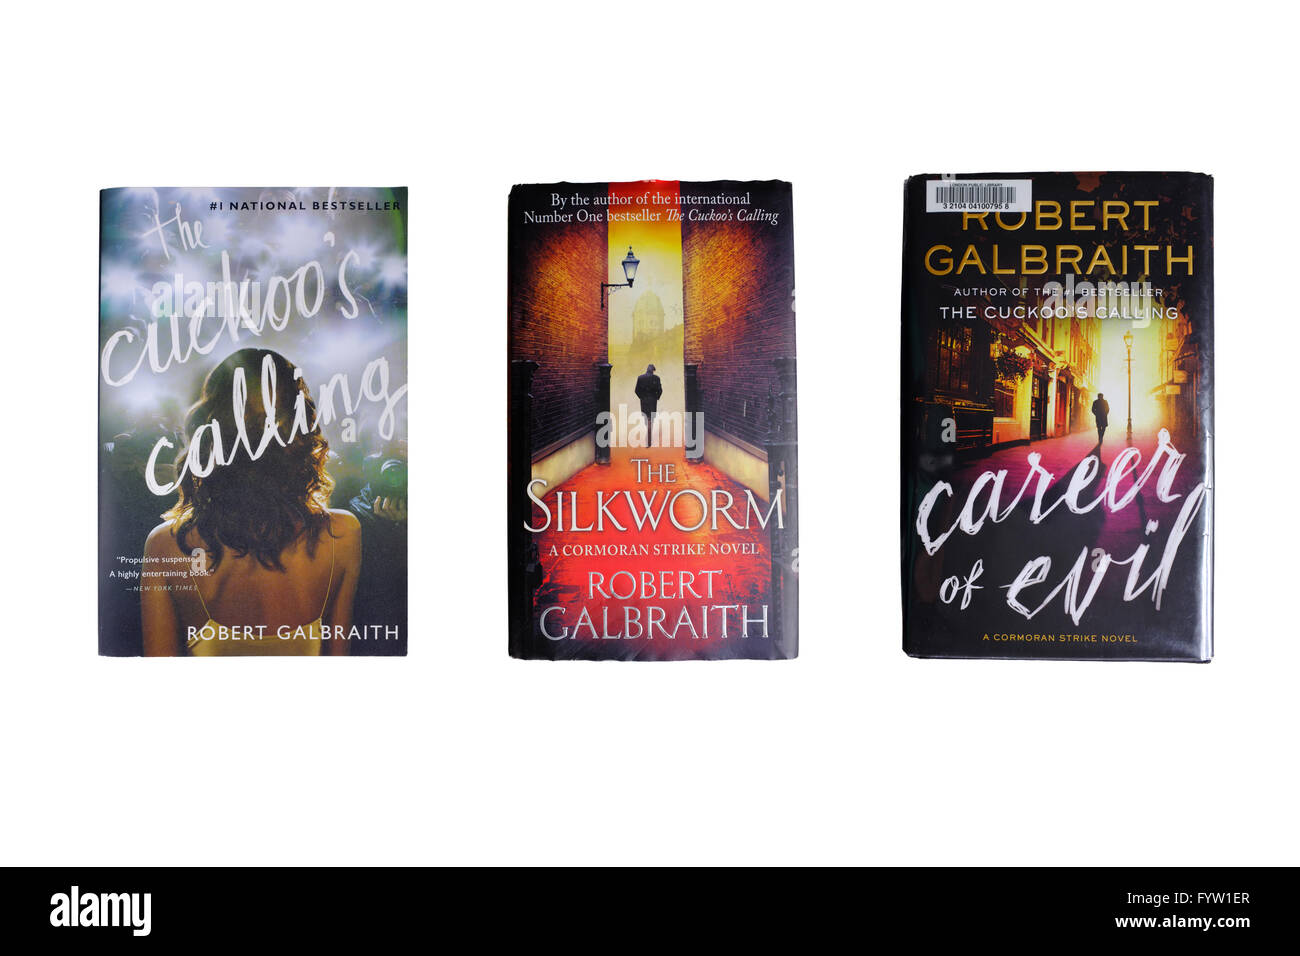 Three Robert Galbraith books photographed against a white background. - Stock Image